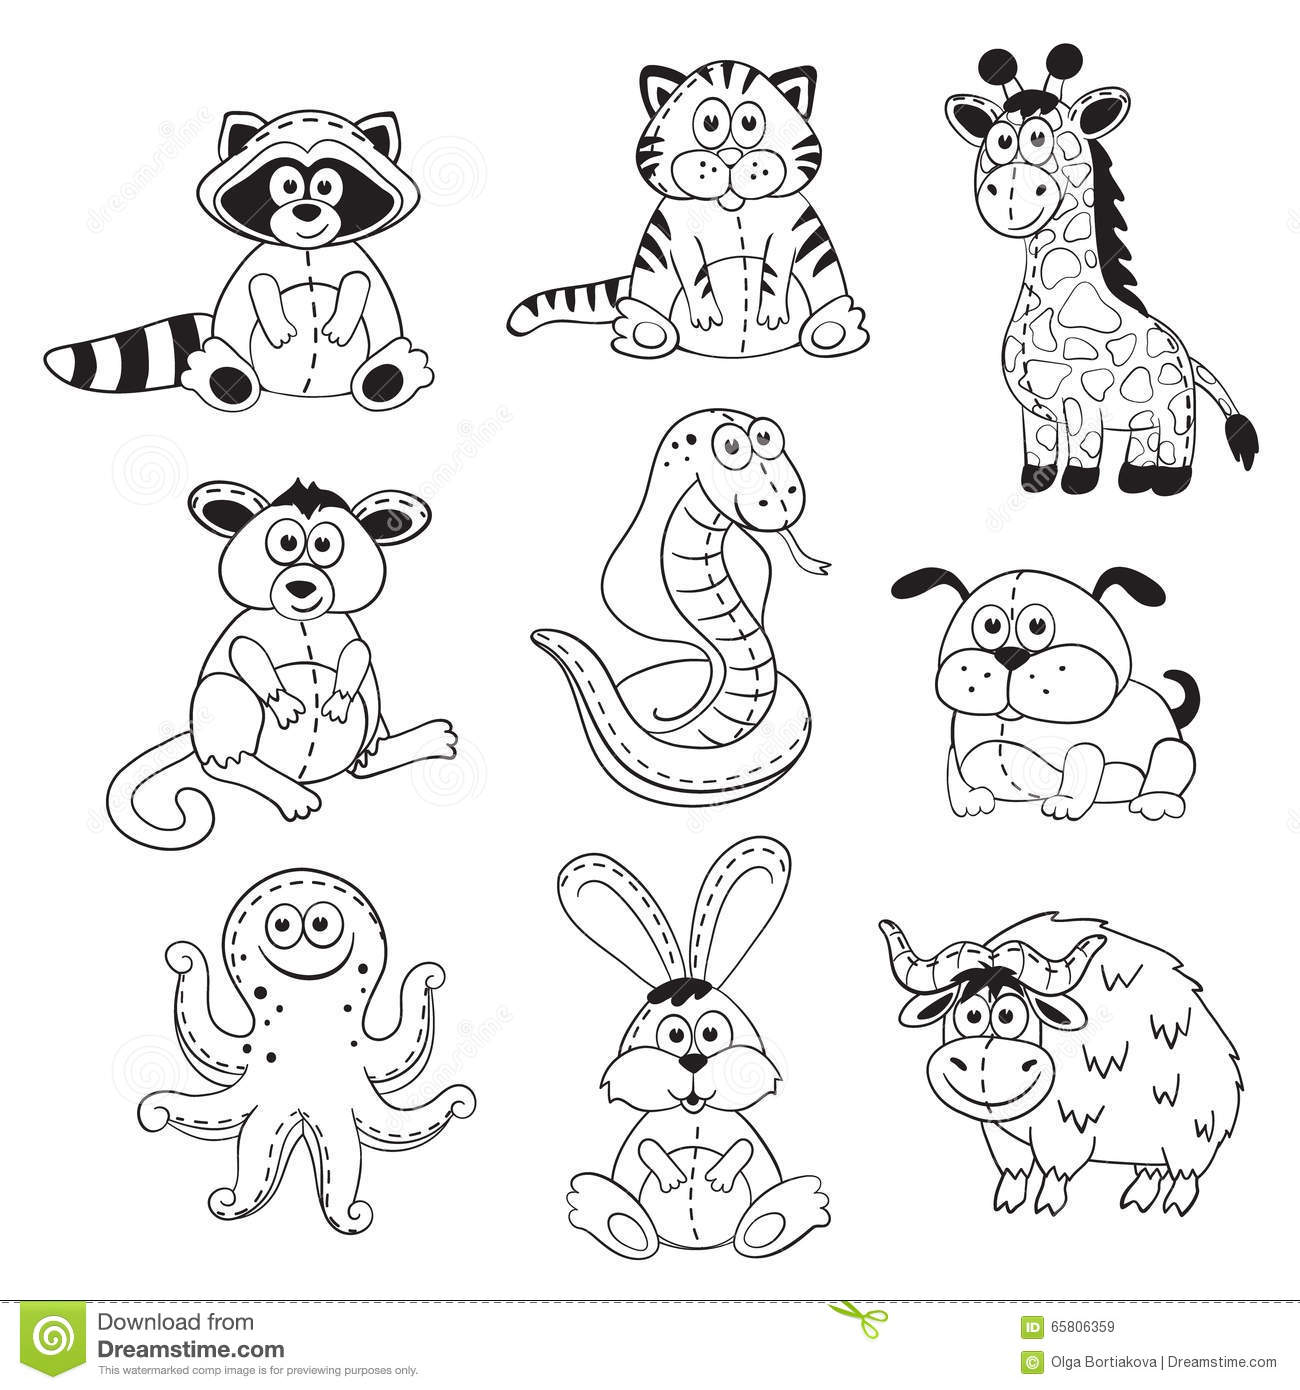 333970128602014310 also Stock Illustration Cartoon Animals Outlines Cute Isolated White Background Stuffed Toys Set Outline Collection Image65806359 likewise 173459023123673330 moreover PICI Sharks C aign also Fire Crafts. on sea snake outlines